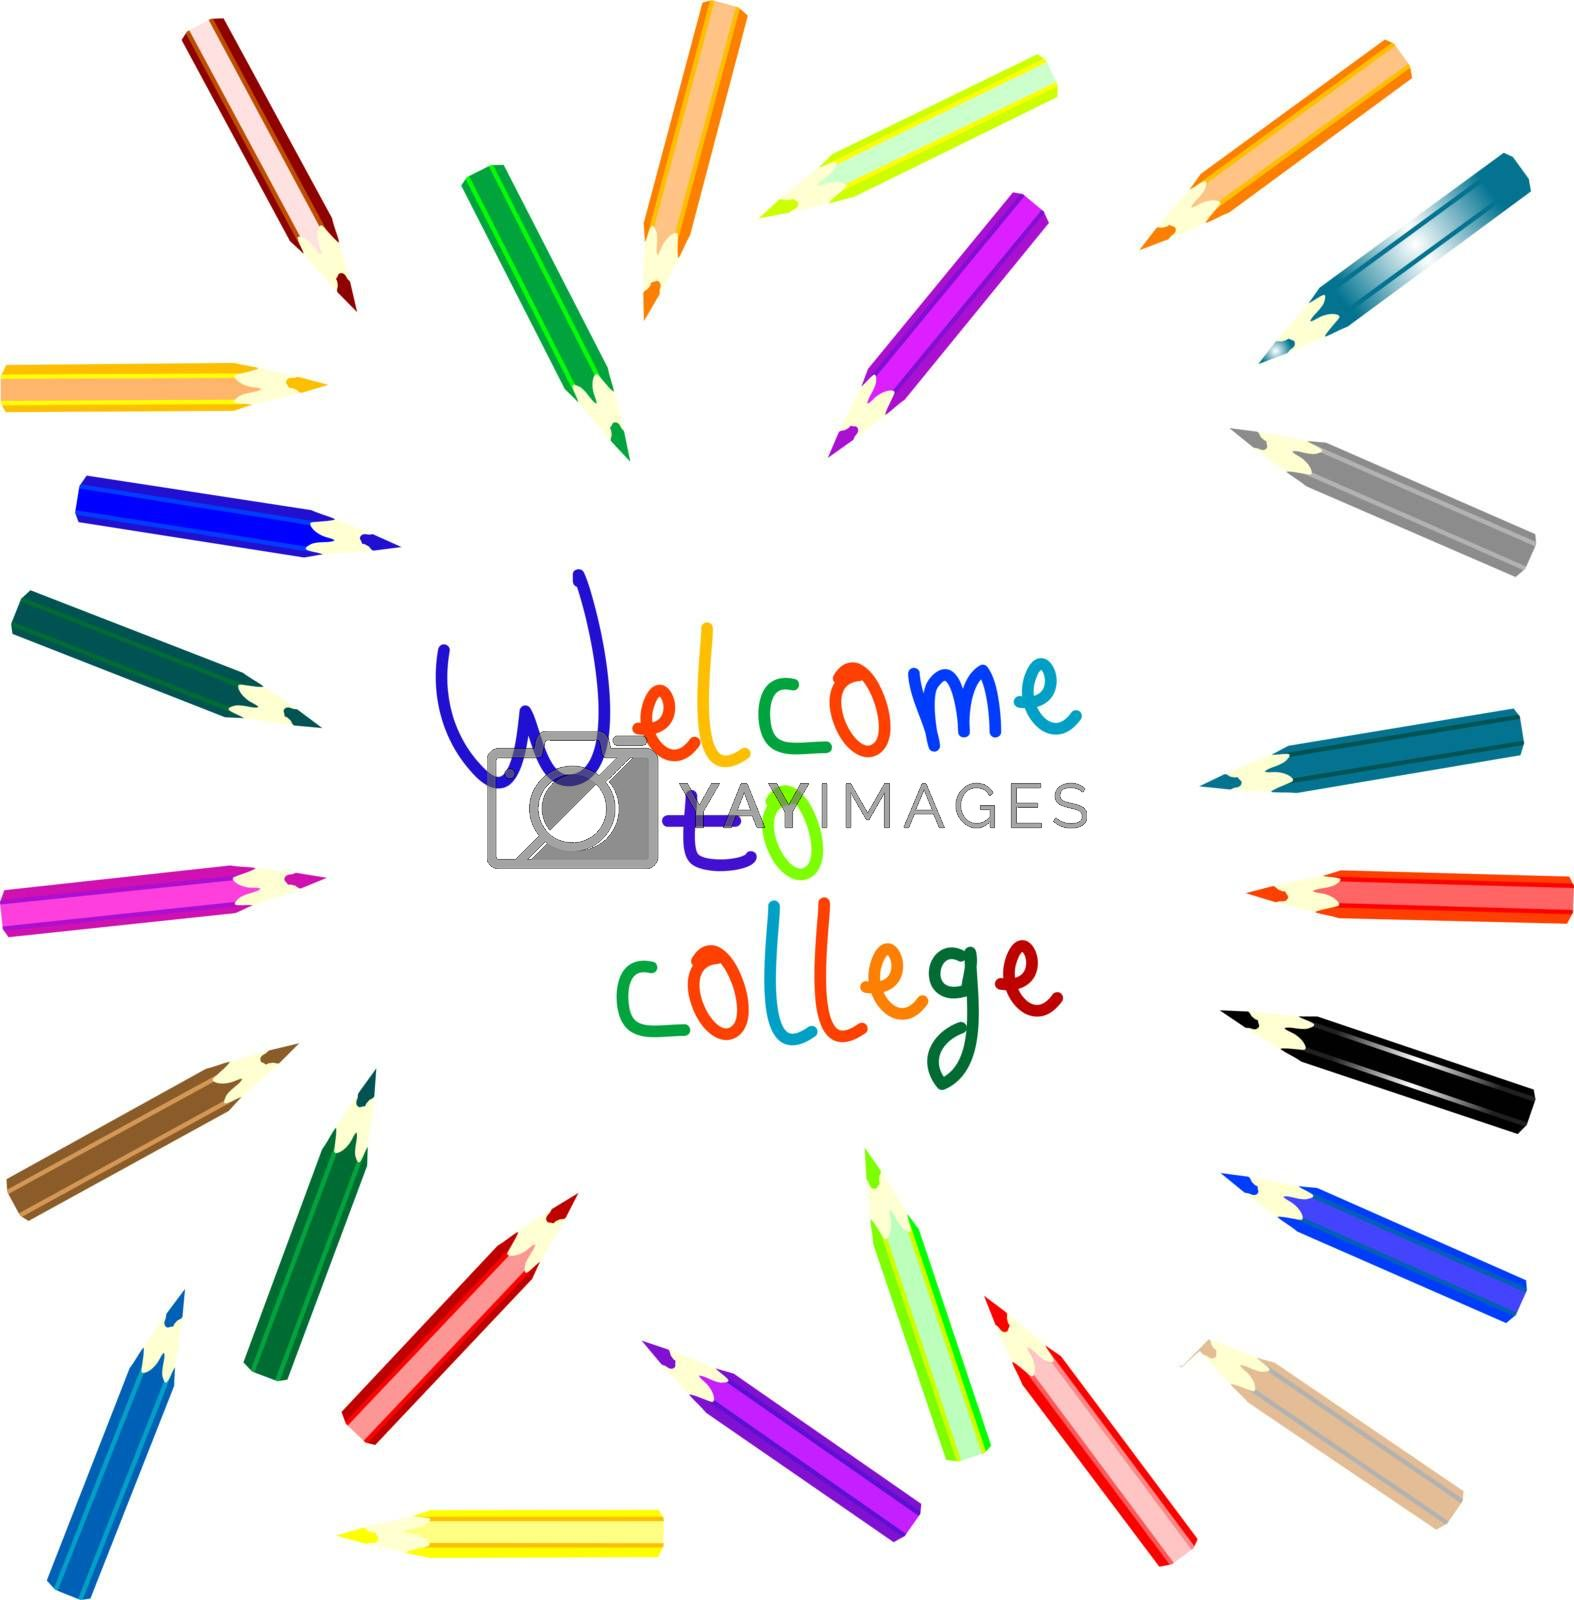 anouncement to welcome to college writen colored pencils